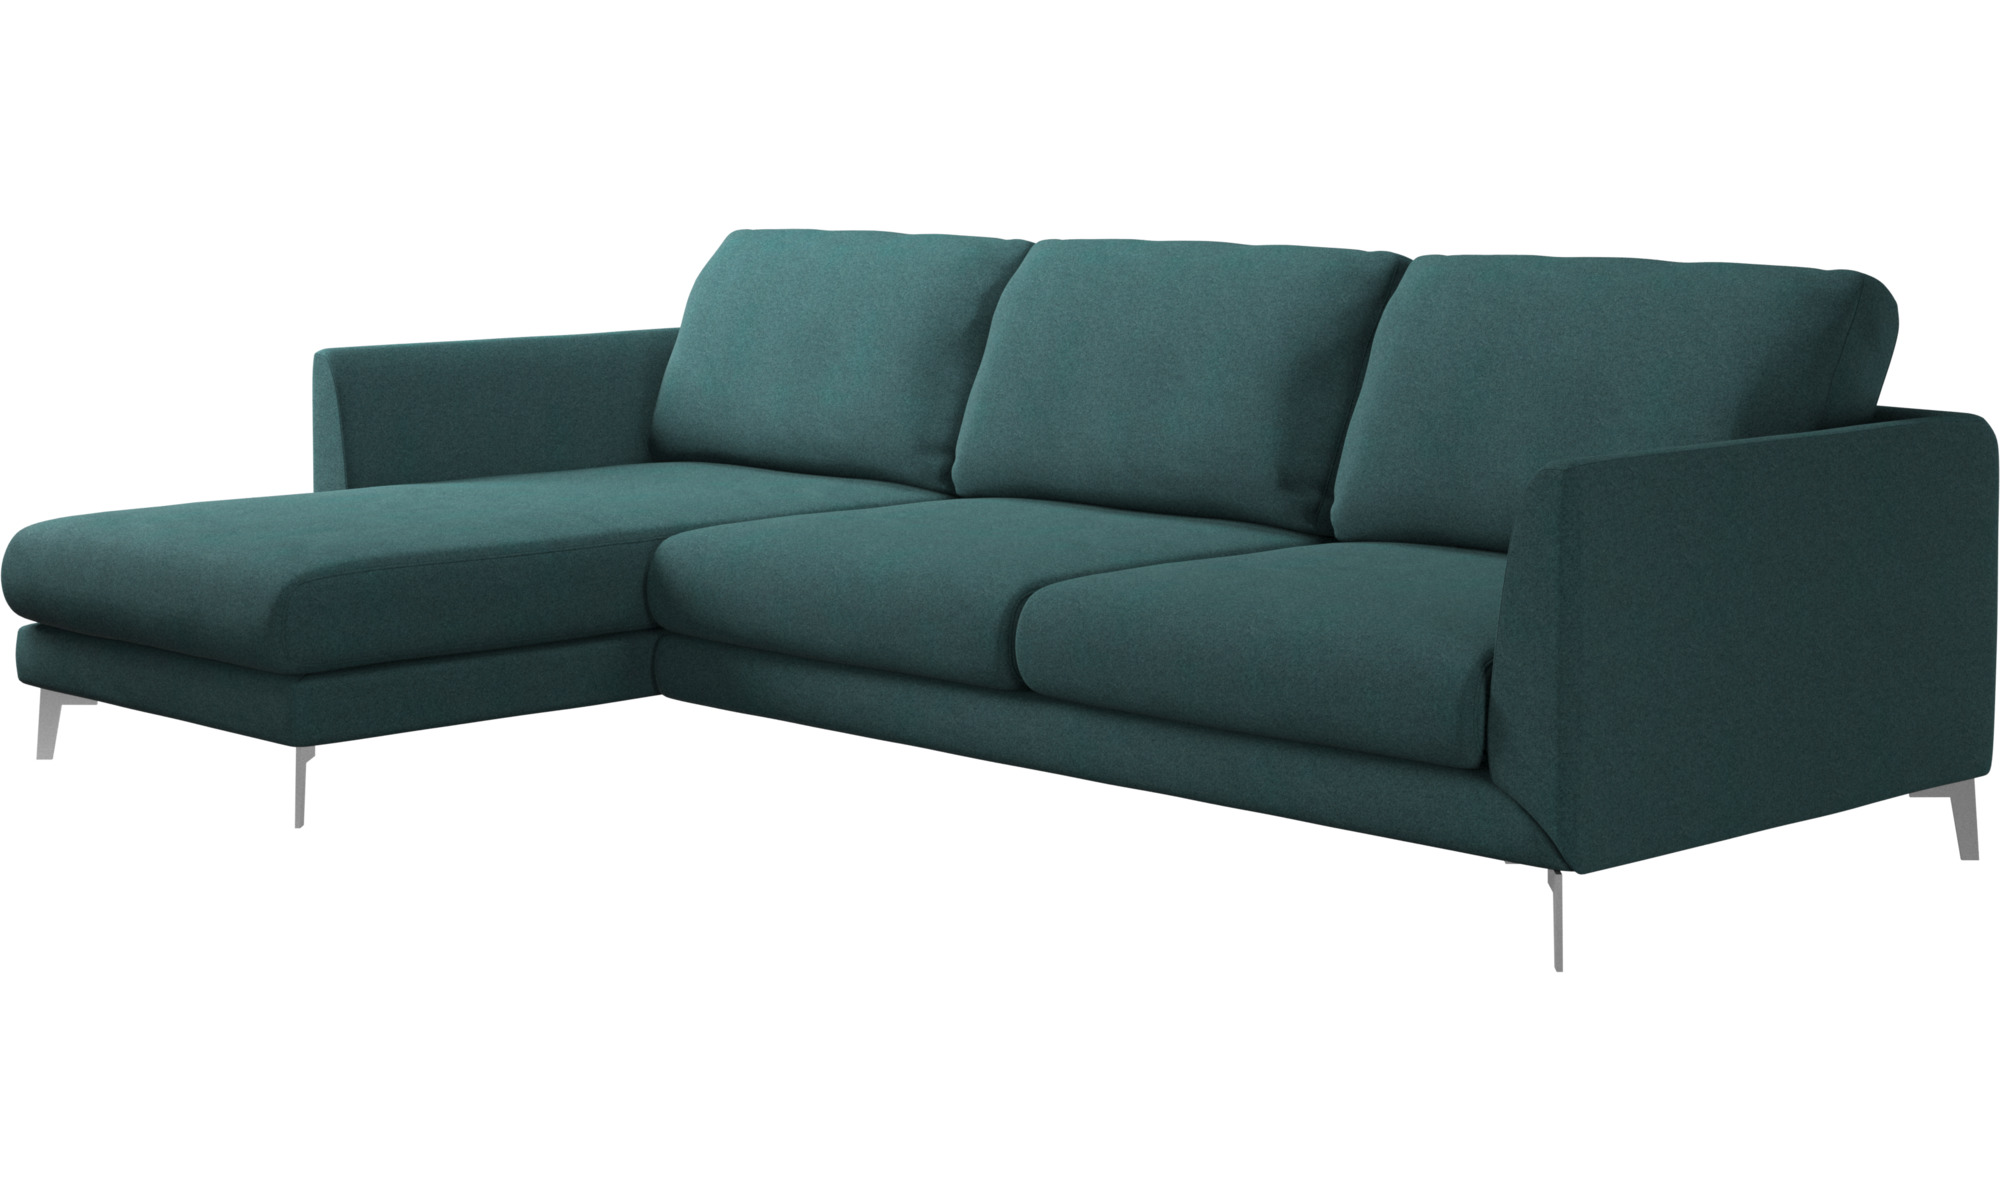 Chaise longue sofas fargo sofa with resting unit boconcept for Chaise longue sofa